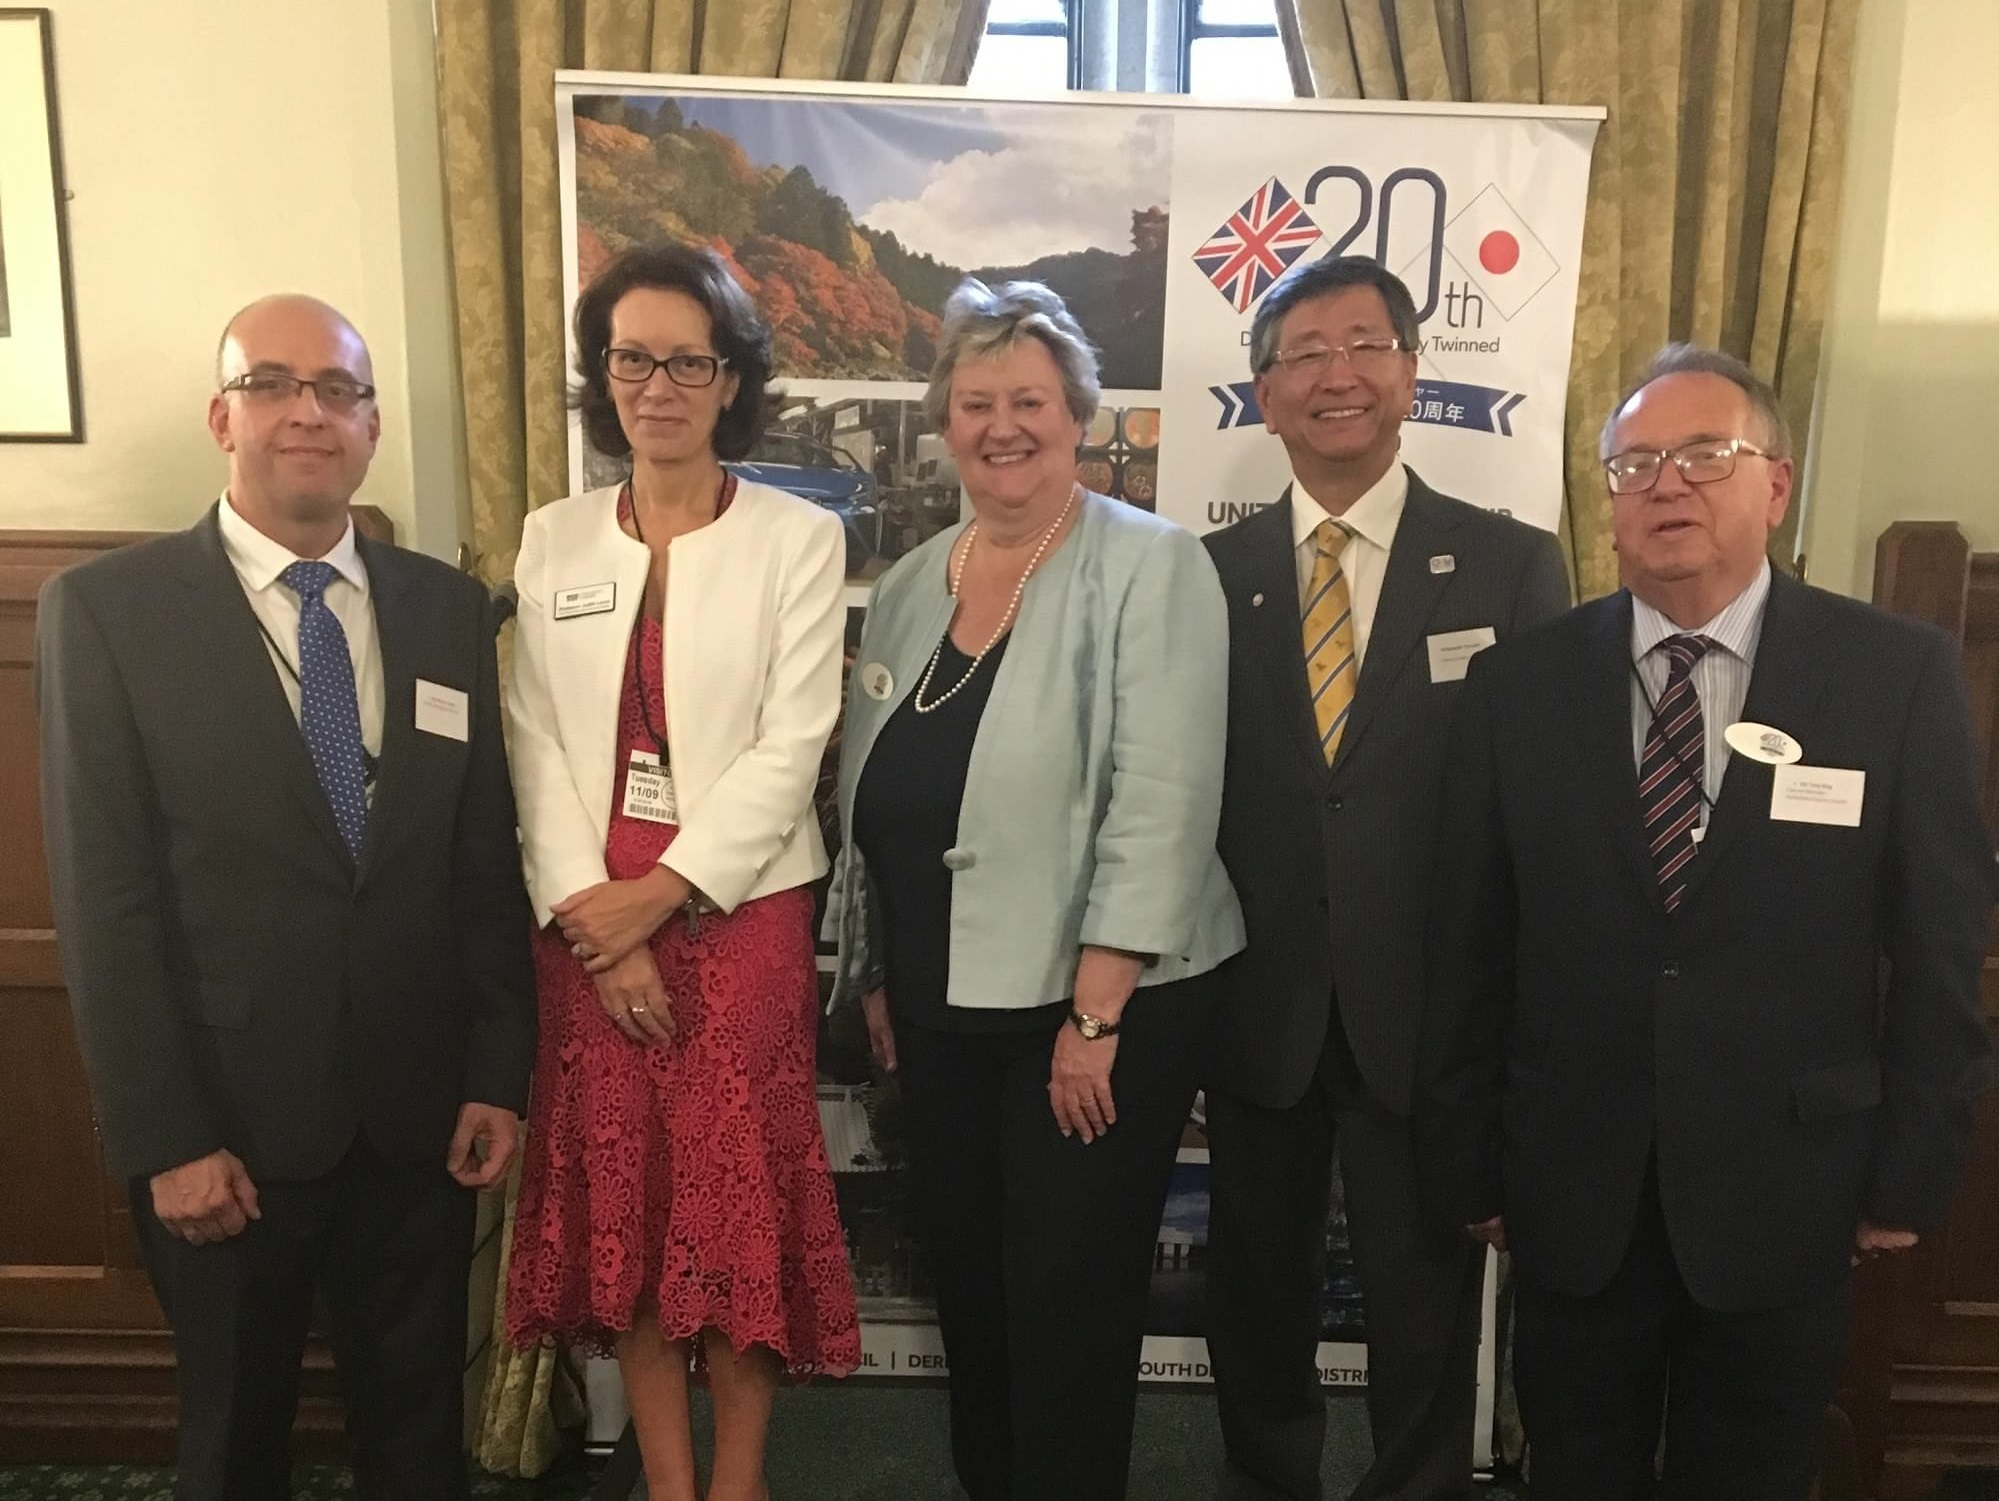 Westminster event to mark the 20th anniversary of the twinning of Derbyshire with Toyota City